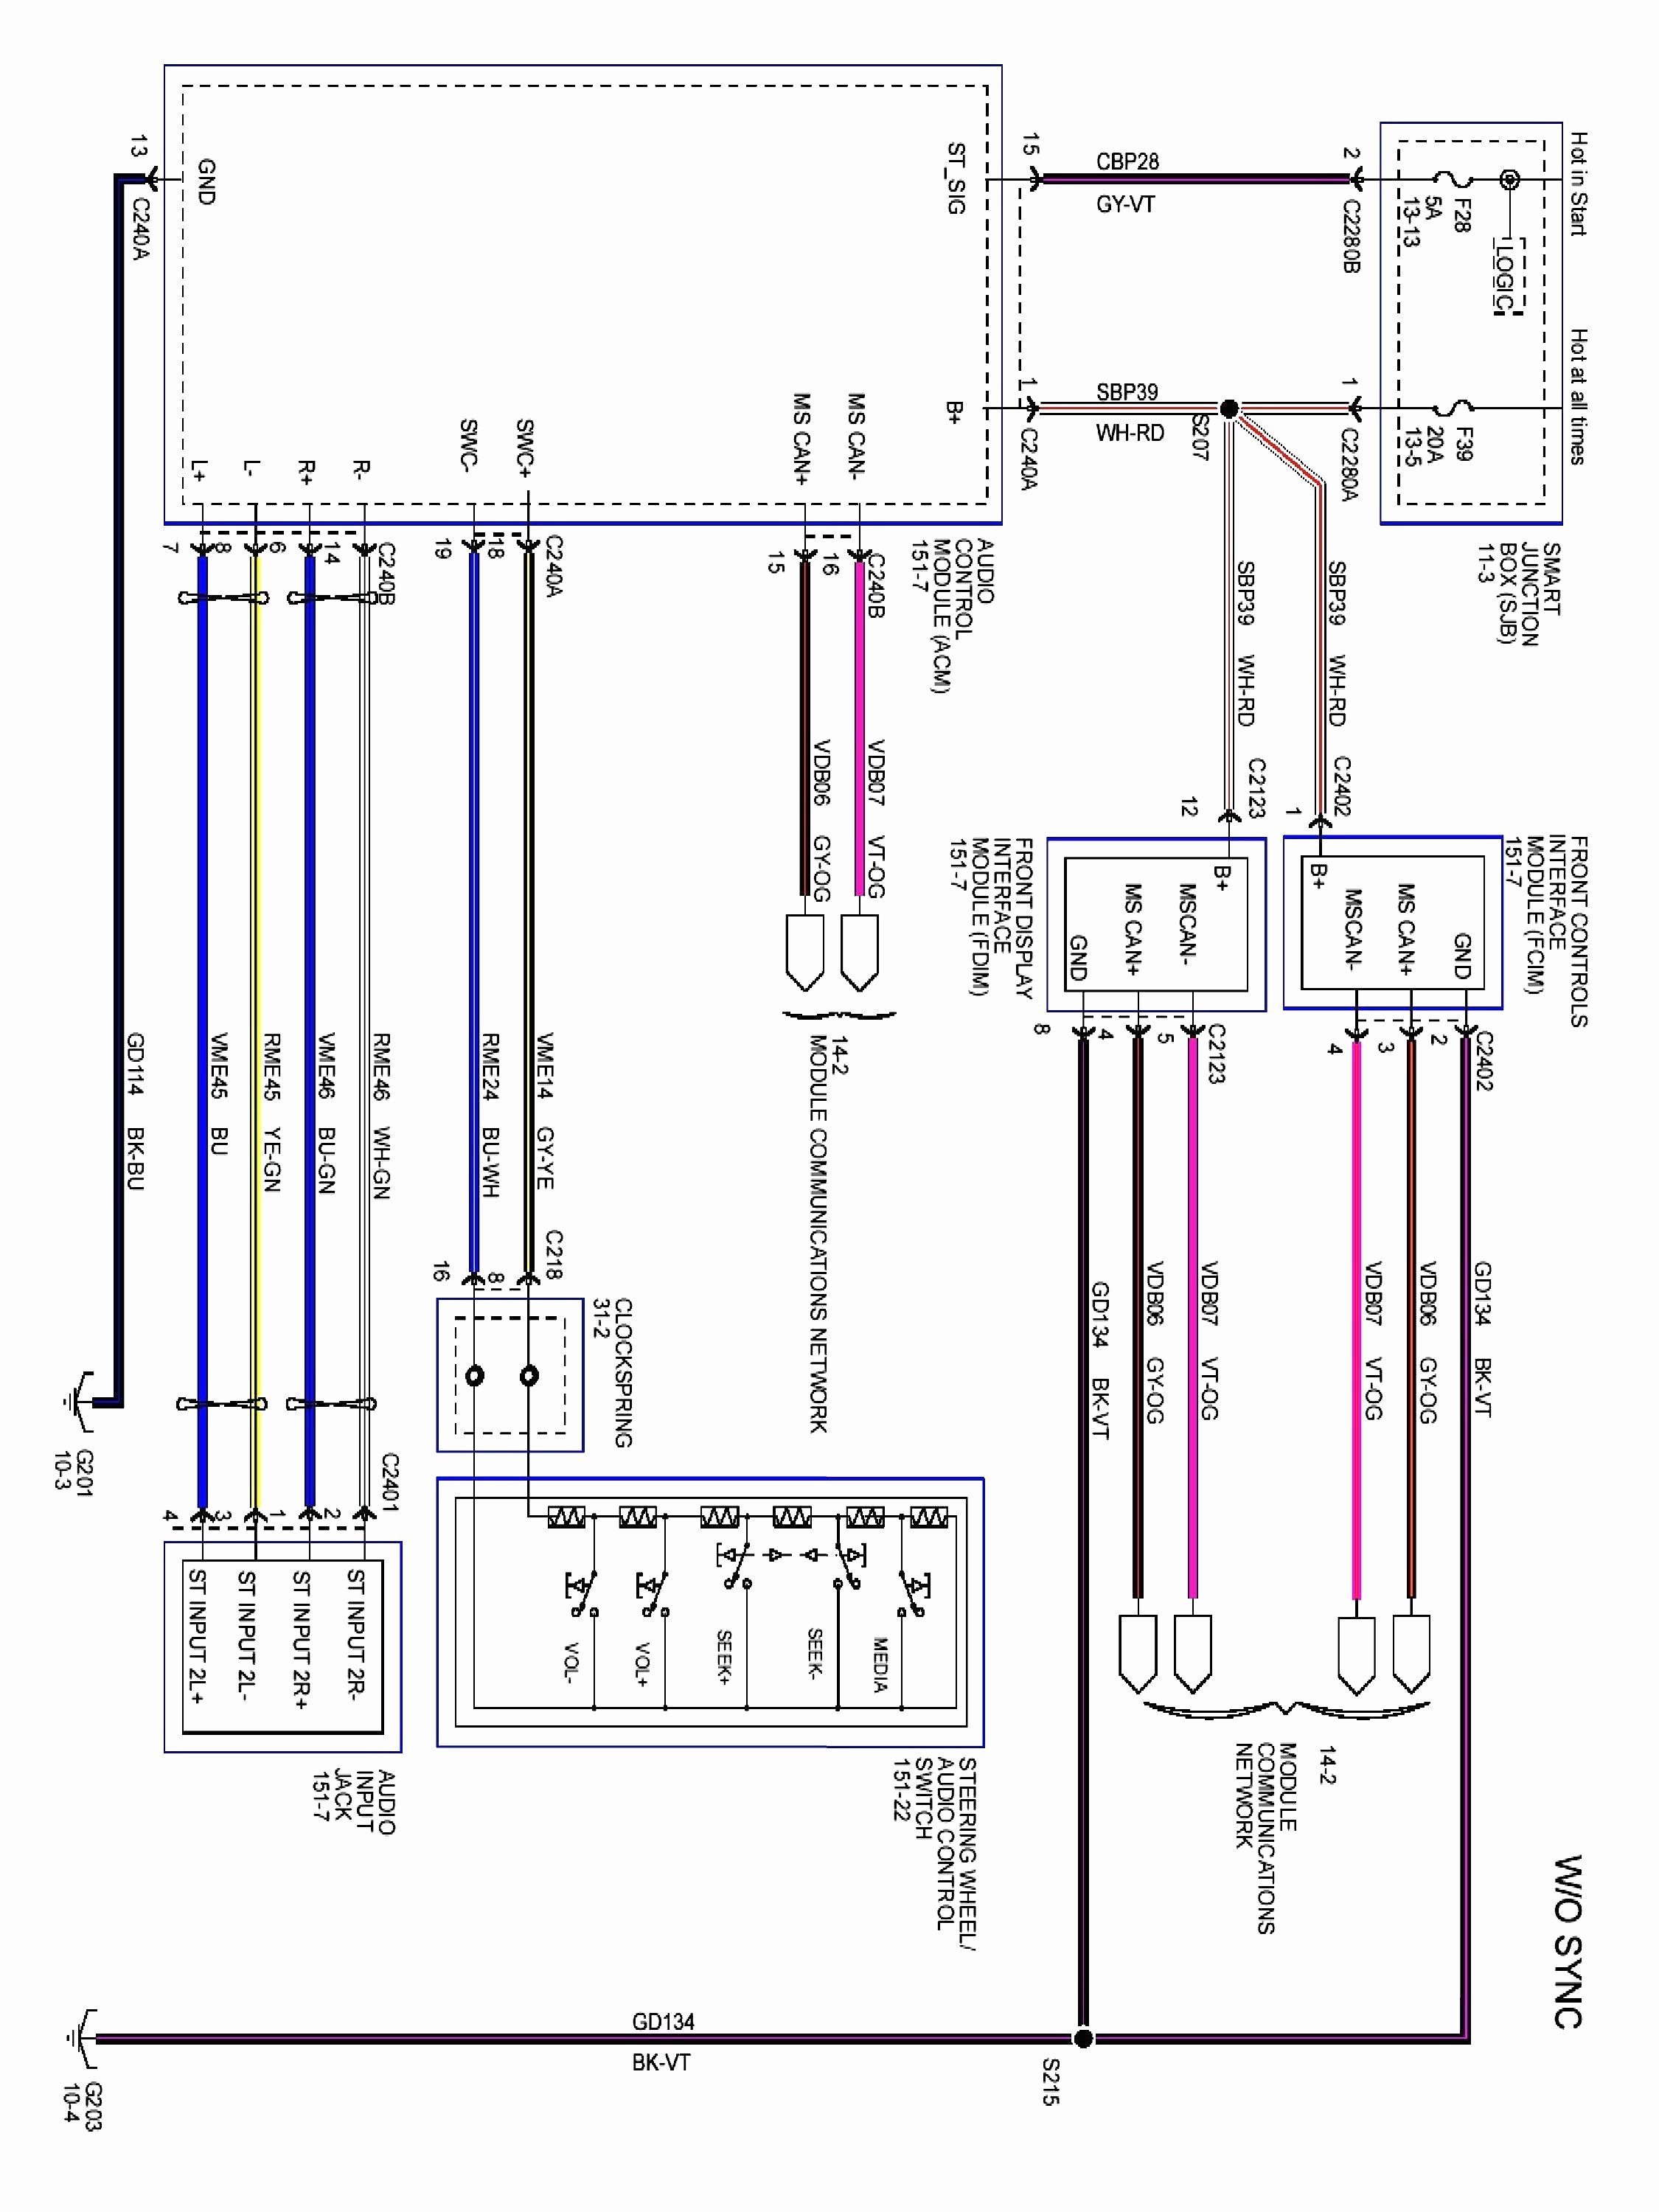 radio wiring diagram Collection-Wiring Diagram For Amplifier Car Stereo Best Amplifier Wiring Diagram Inspirational Car Stereo Wiring Diagrams 0d 13-f